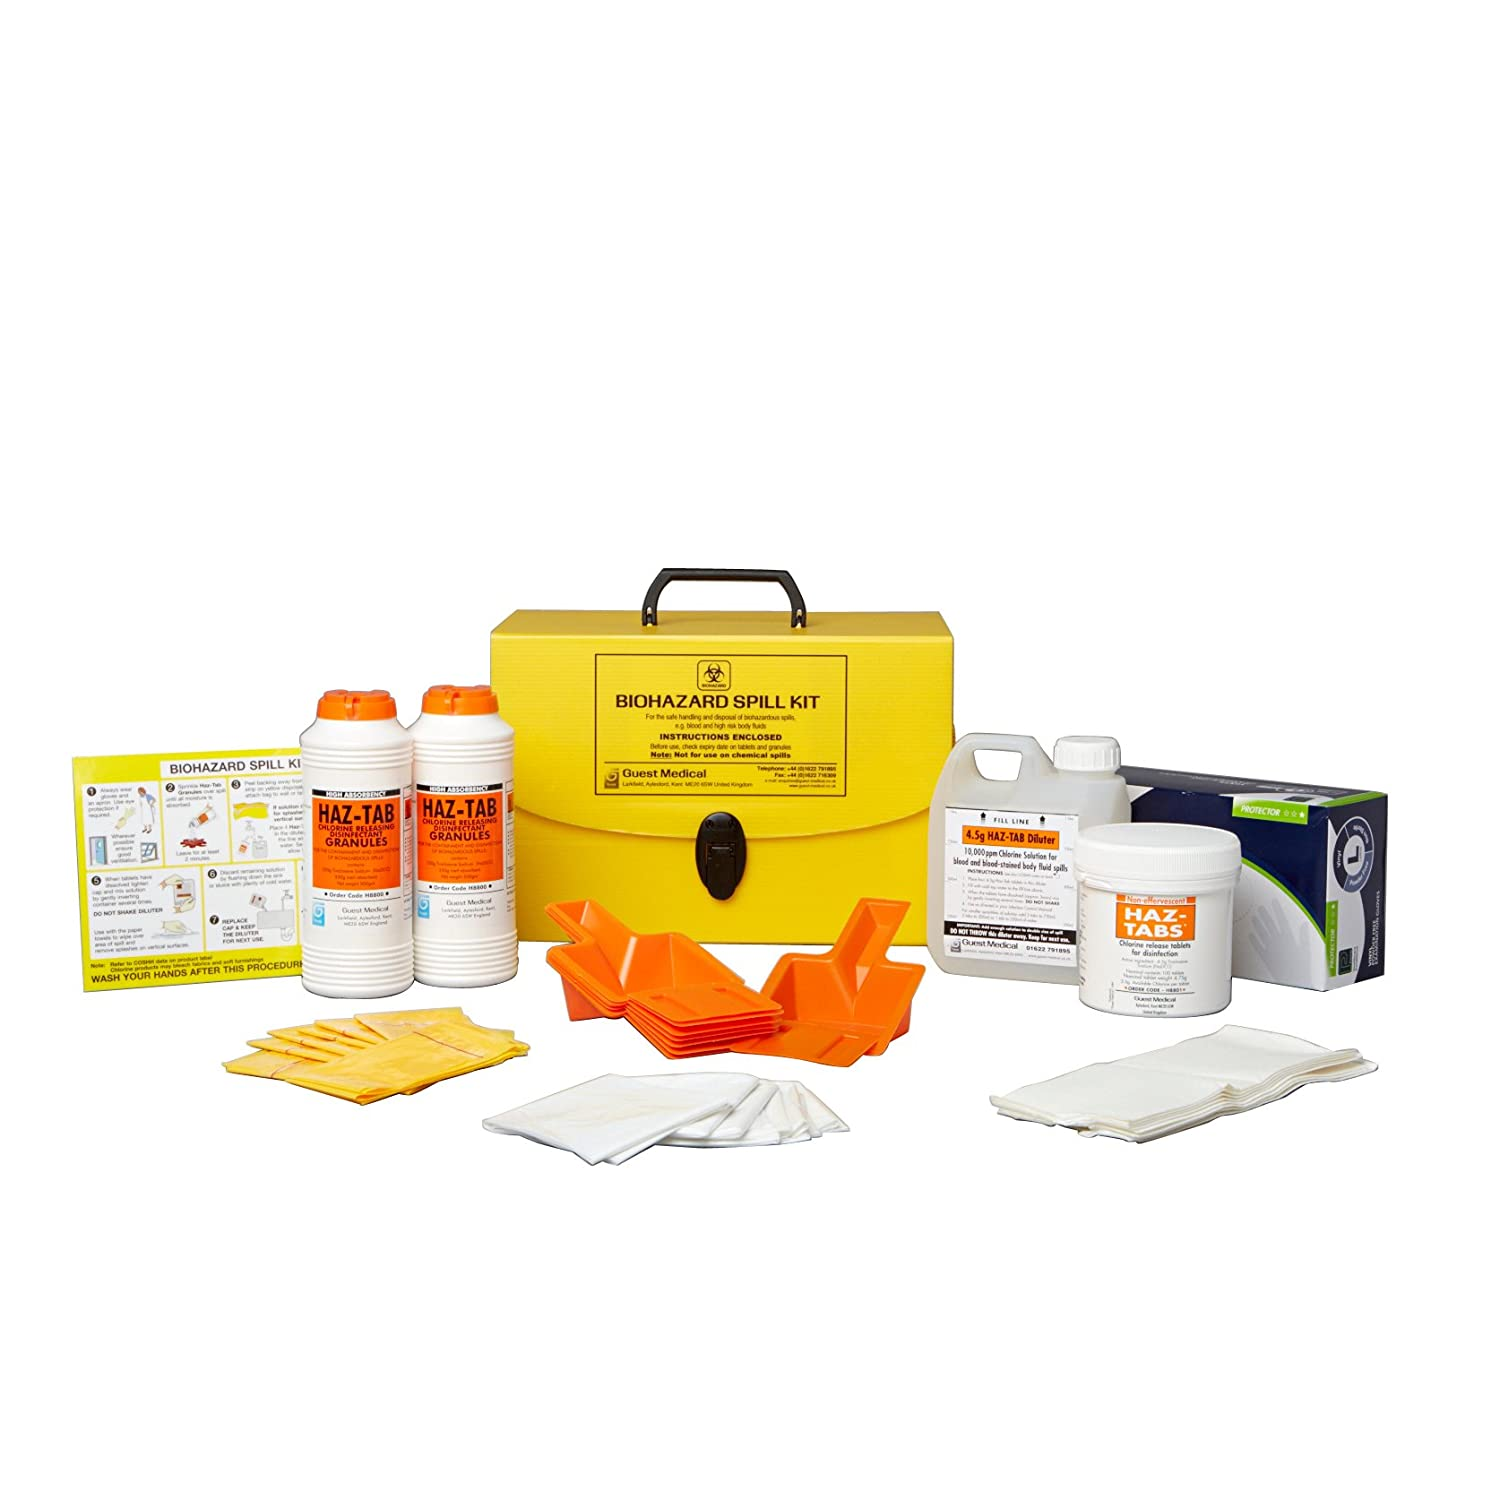 Corrugated Box with Liner 12 x 24 x 12 Size Medegen Medical Products 10-2011 SAF-T-TAINER Bio-Hazardous Waste Bags